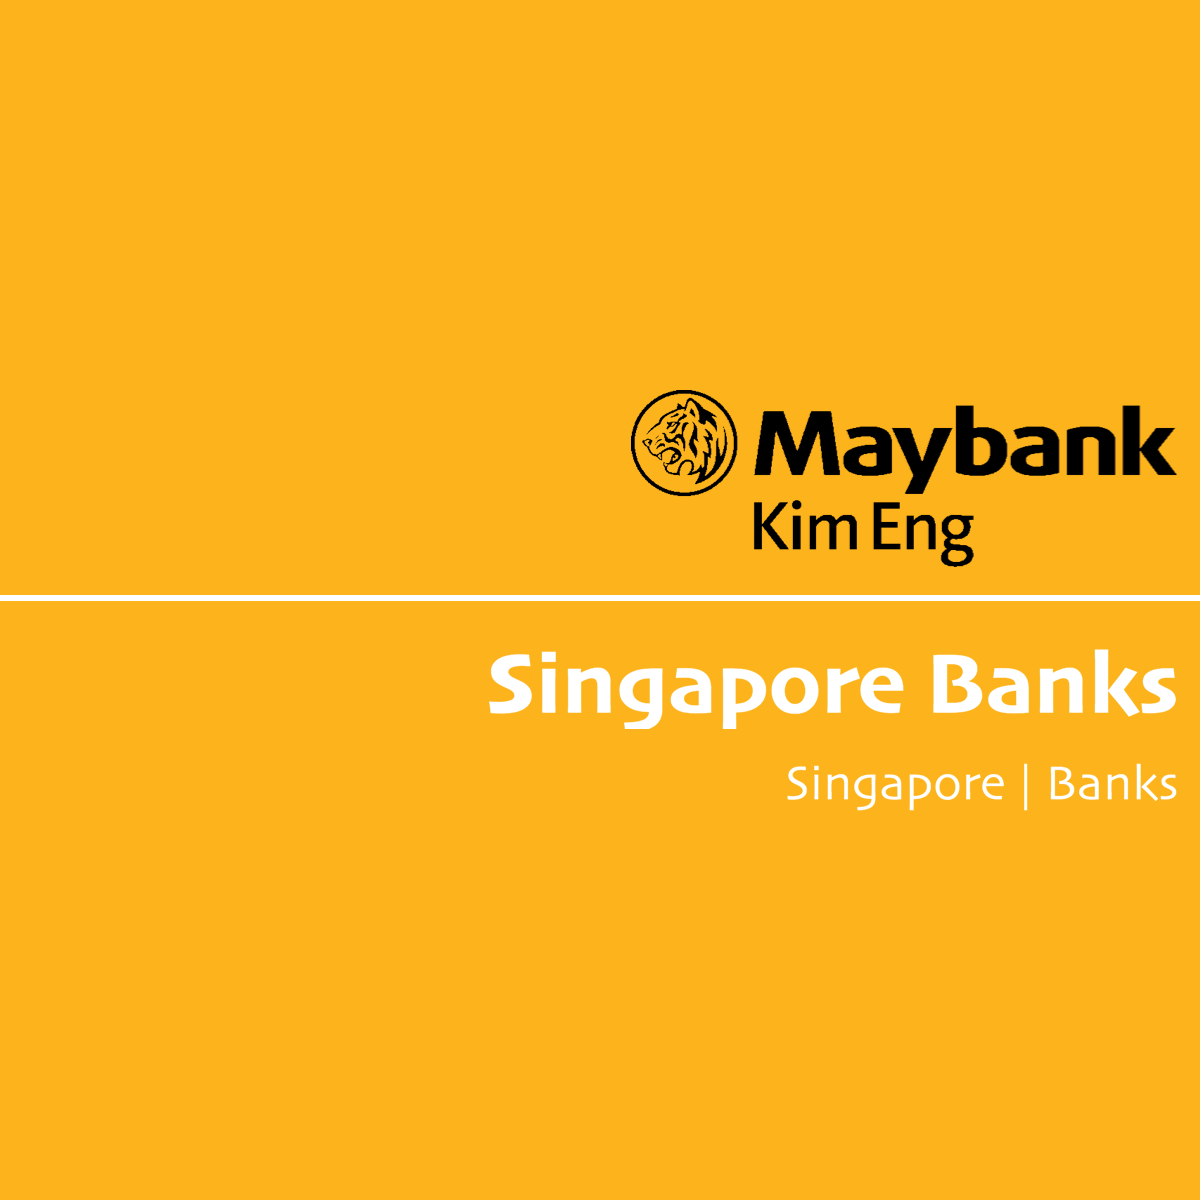 Singapore Banks - Maybank Kim Eng 2017-02-27: Silver Lining; U/G Sector to NEUTRAL